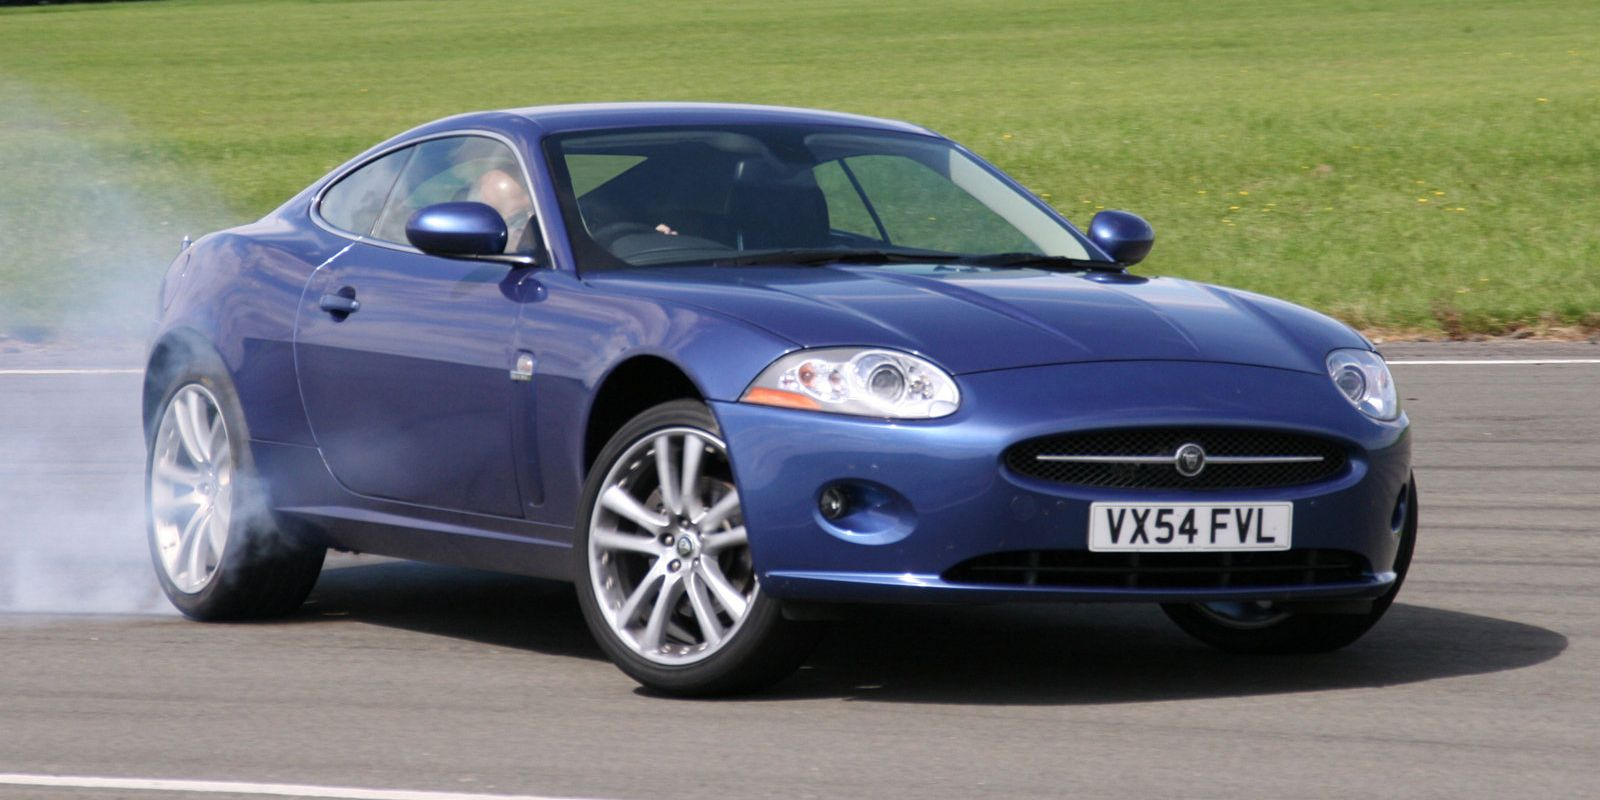 If You Can Afford The Running Costs Or Get A Great Warranty, These Cars  Will Be Nicer Than Anything New At The Same Price. Here Are 15 Great Used  Luxury ...